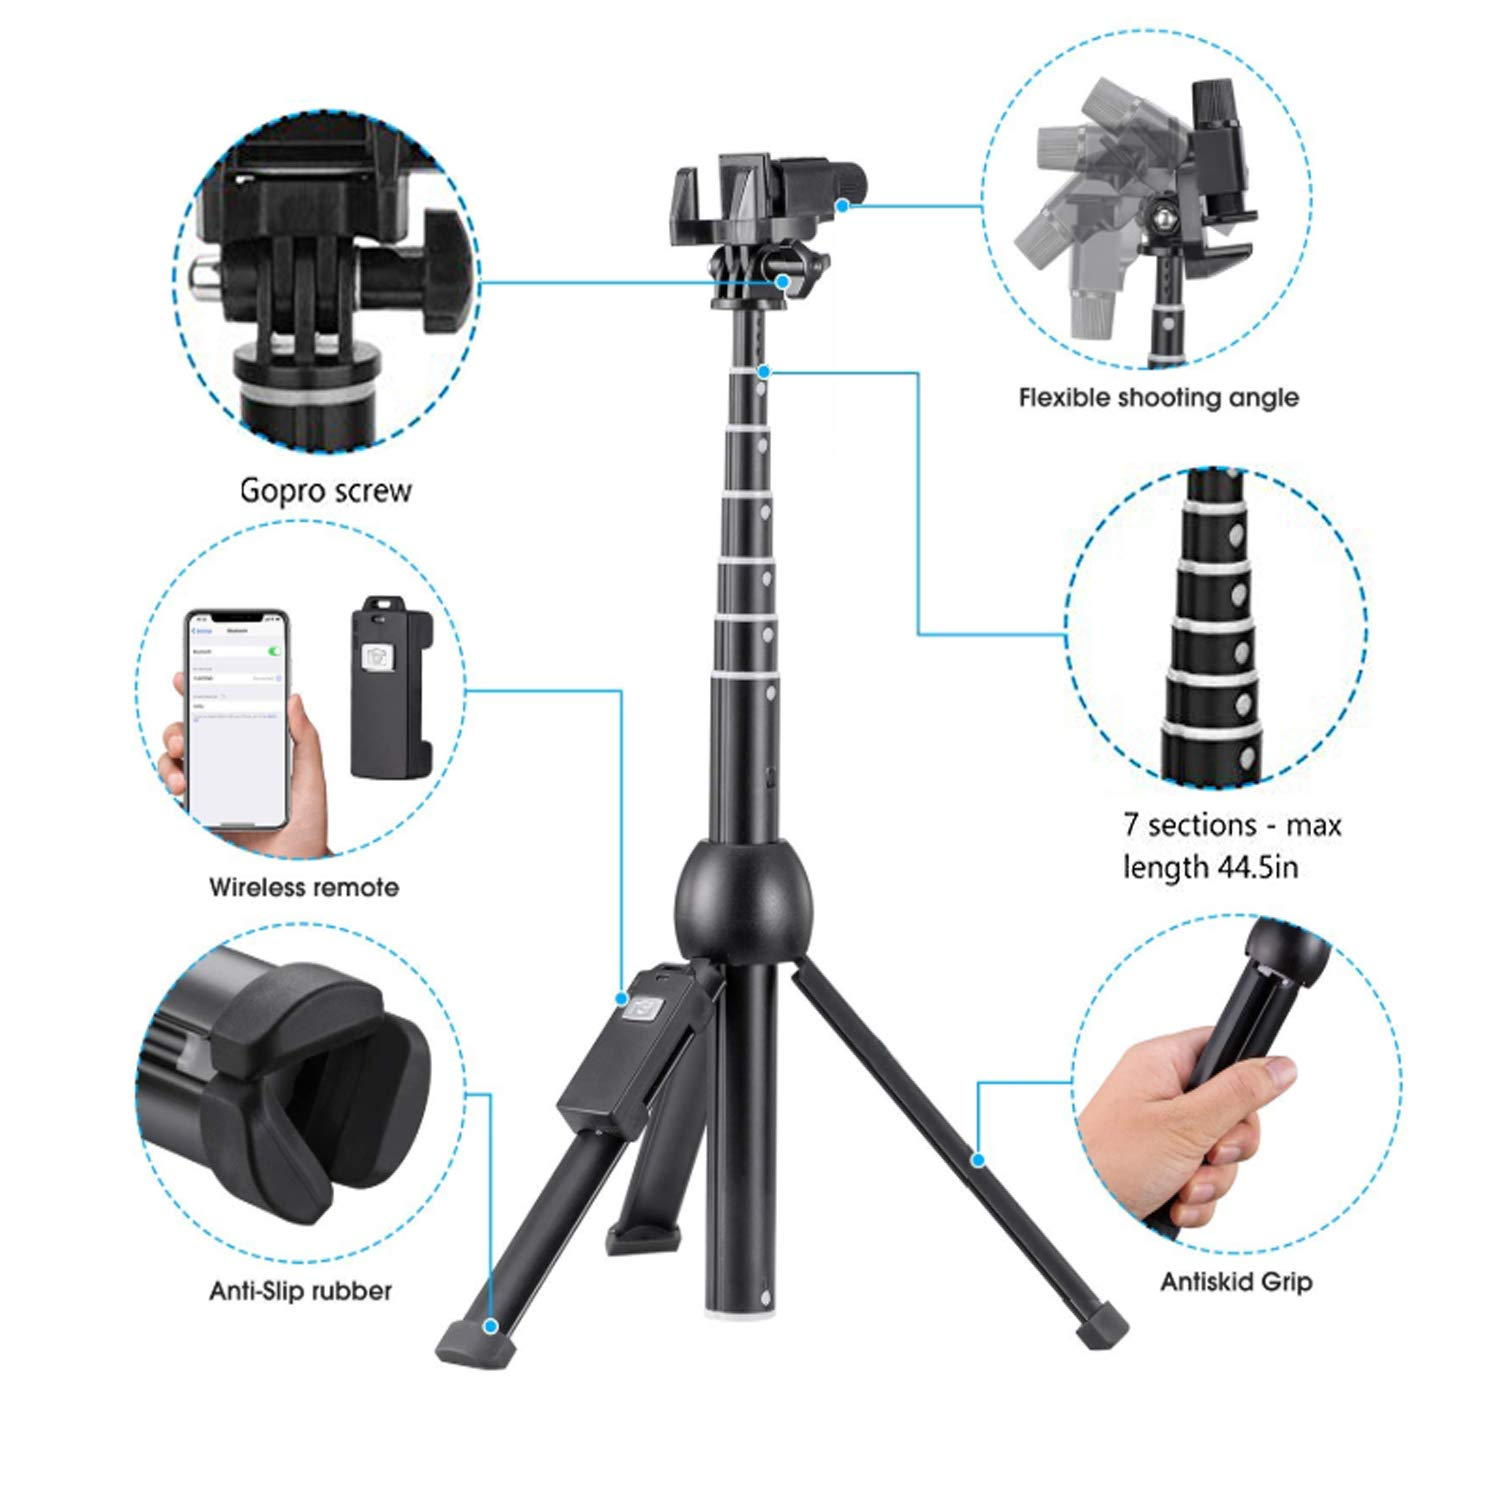 Eocean 45-Inch Selfie Stick Tripod, Extendable Selfie Stick with Wireless Remote Compatible with iPhone Xs/Xr/Xs Max/X/8 Plus/8/ iPhone XR/iPhone XS/iPhone XS Max/7 Plus/Galaxy Note 9/S9/S9 Plus/GoPro by Eocean (Image #2)